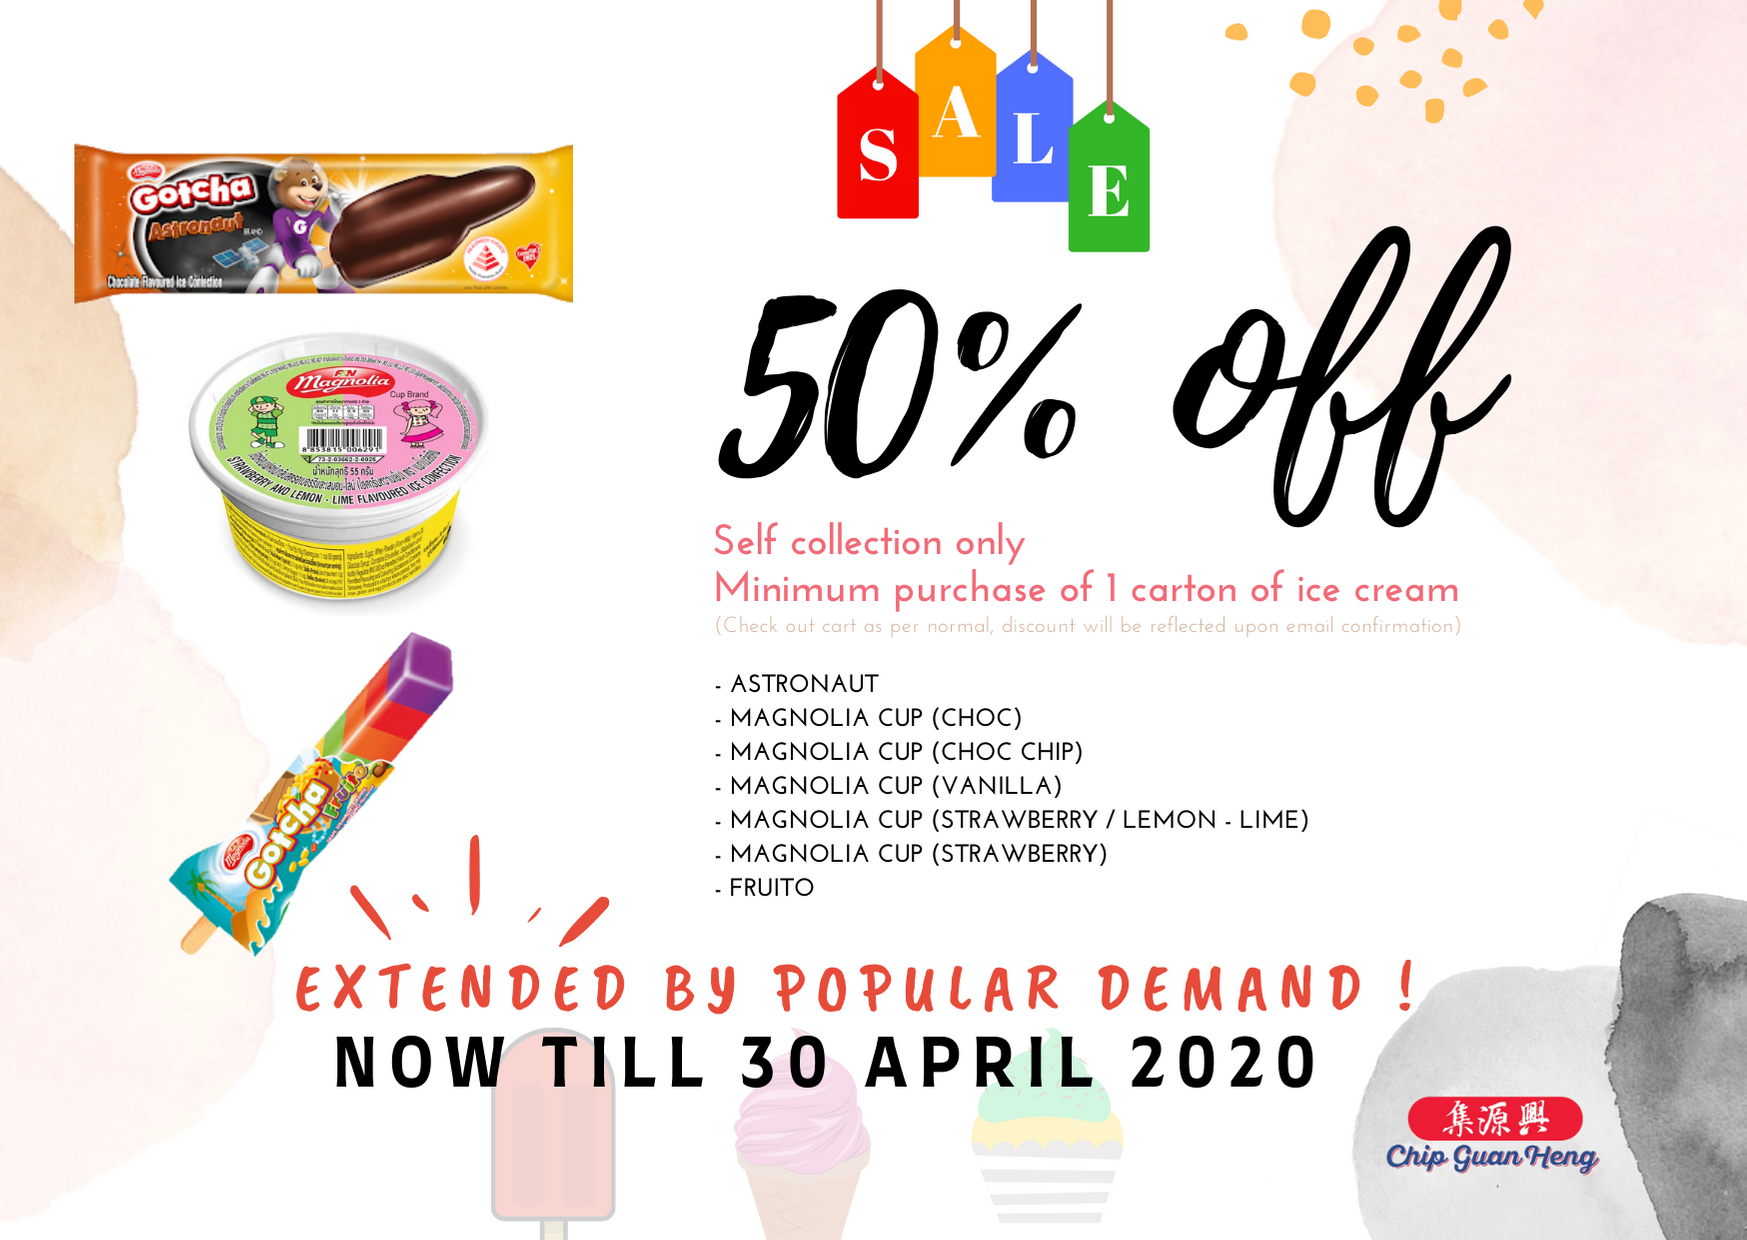 50% off Ice Cream